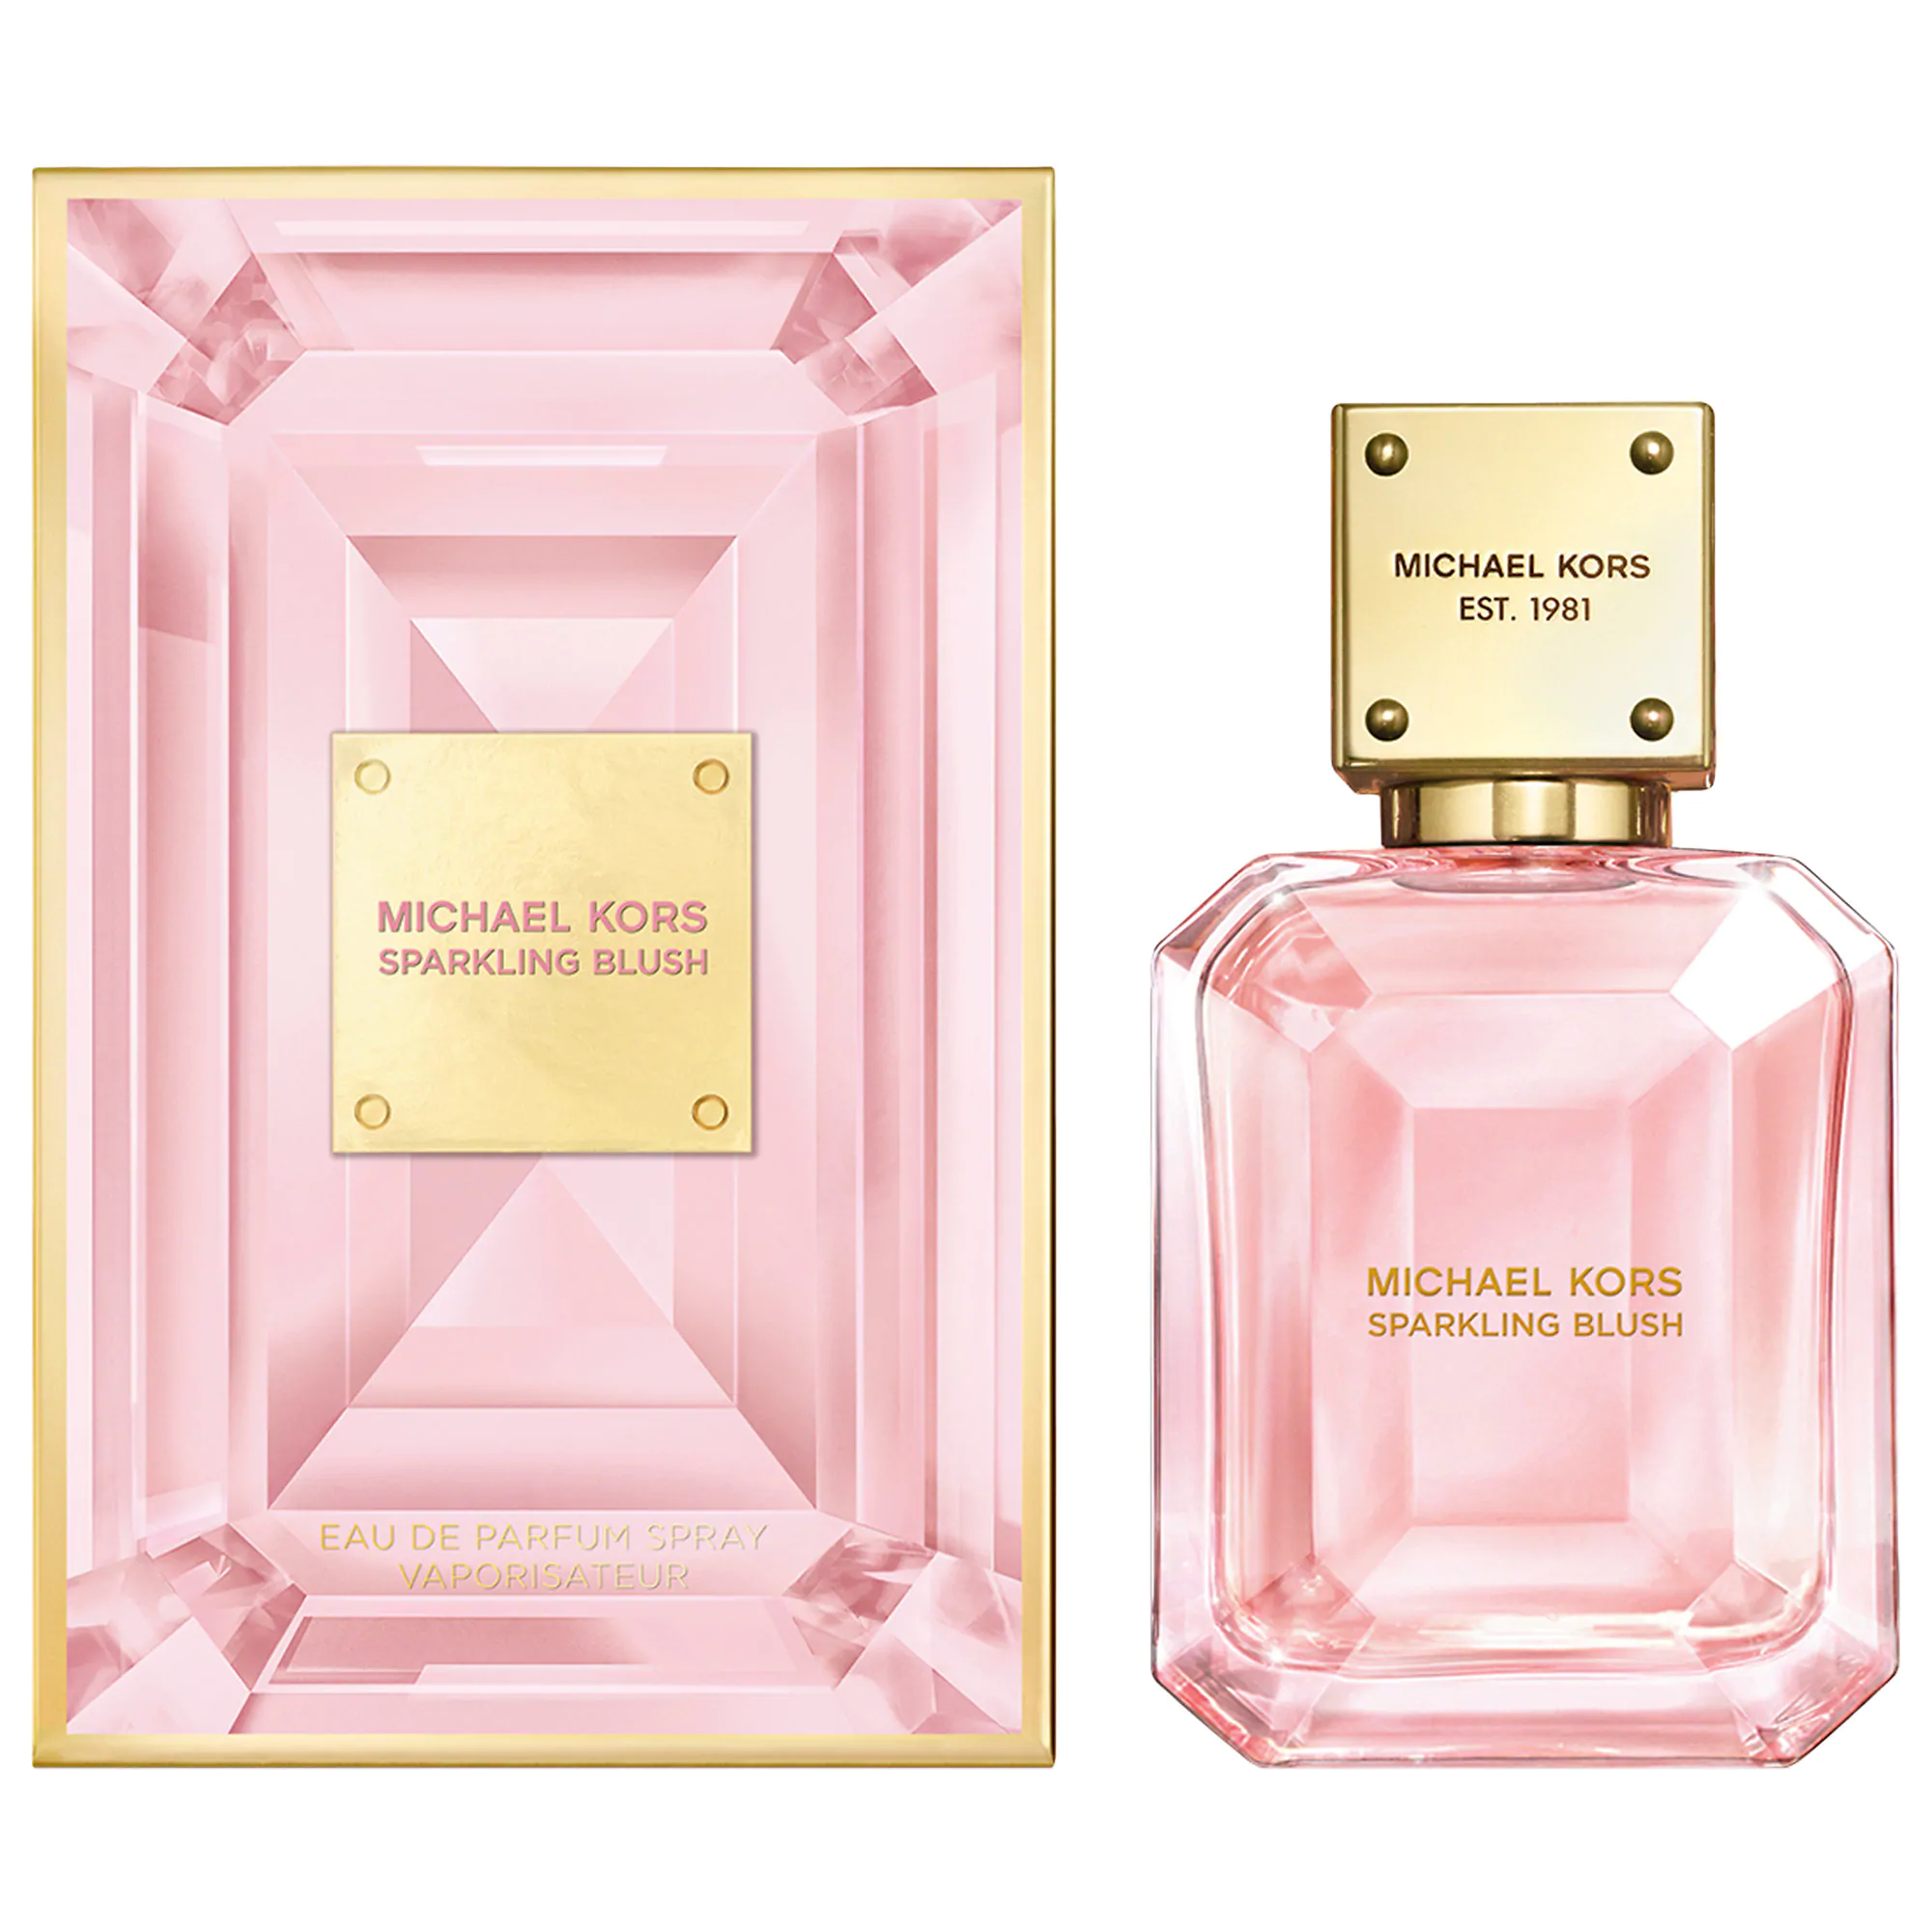 Michael Kors Sparkling Blush EDP 100ml.png